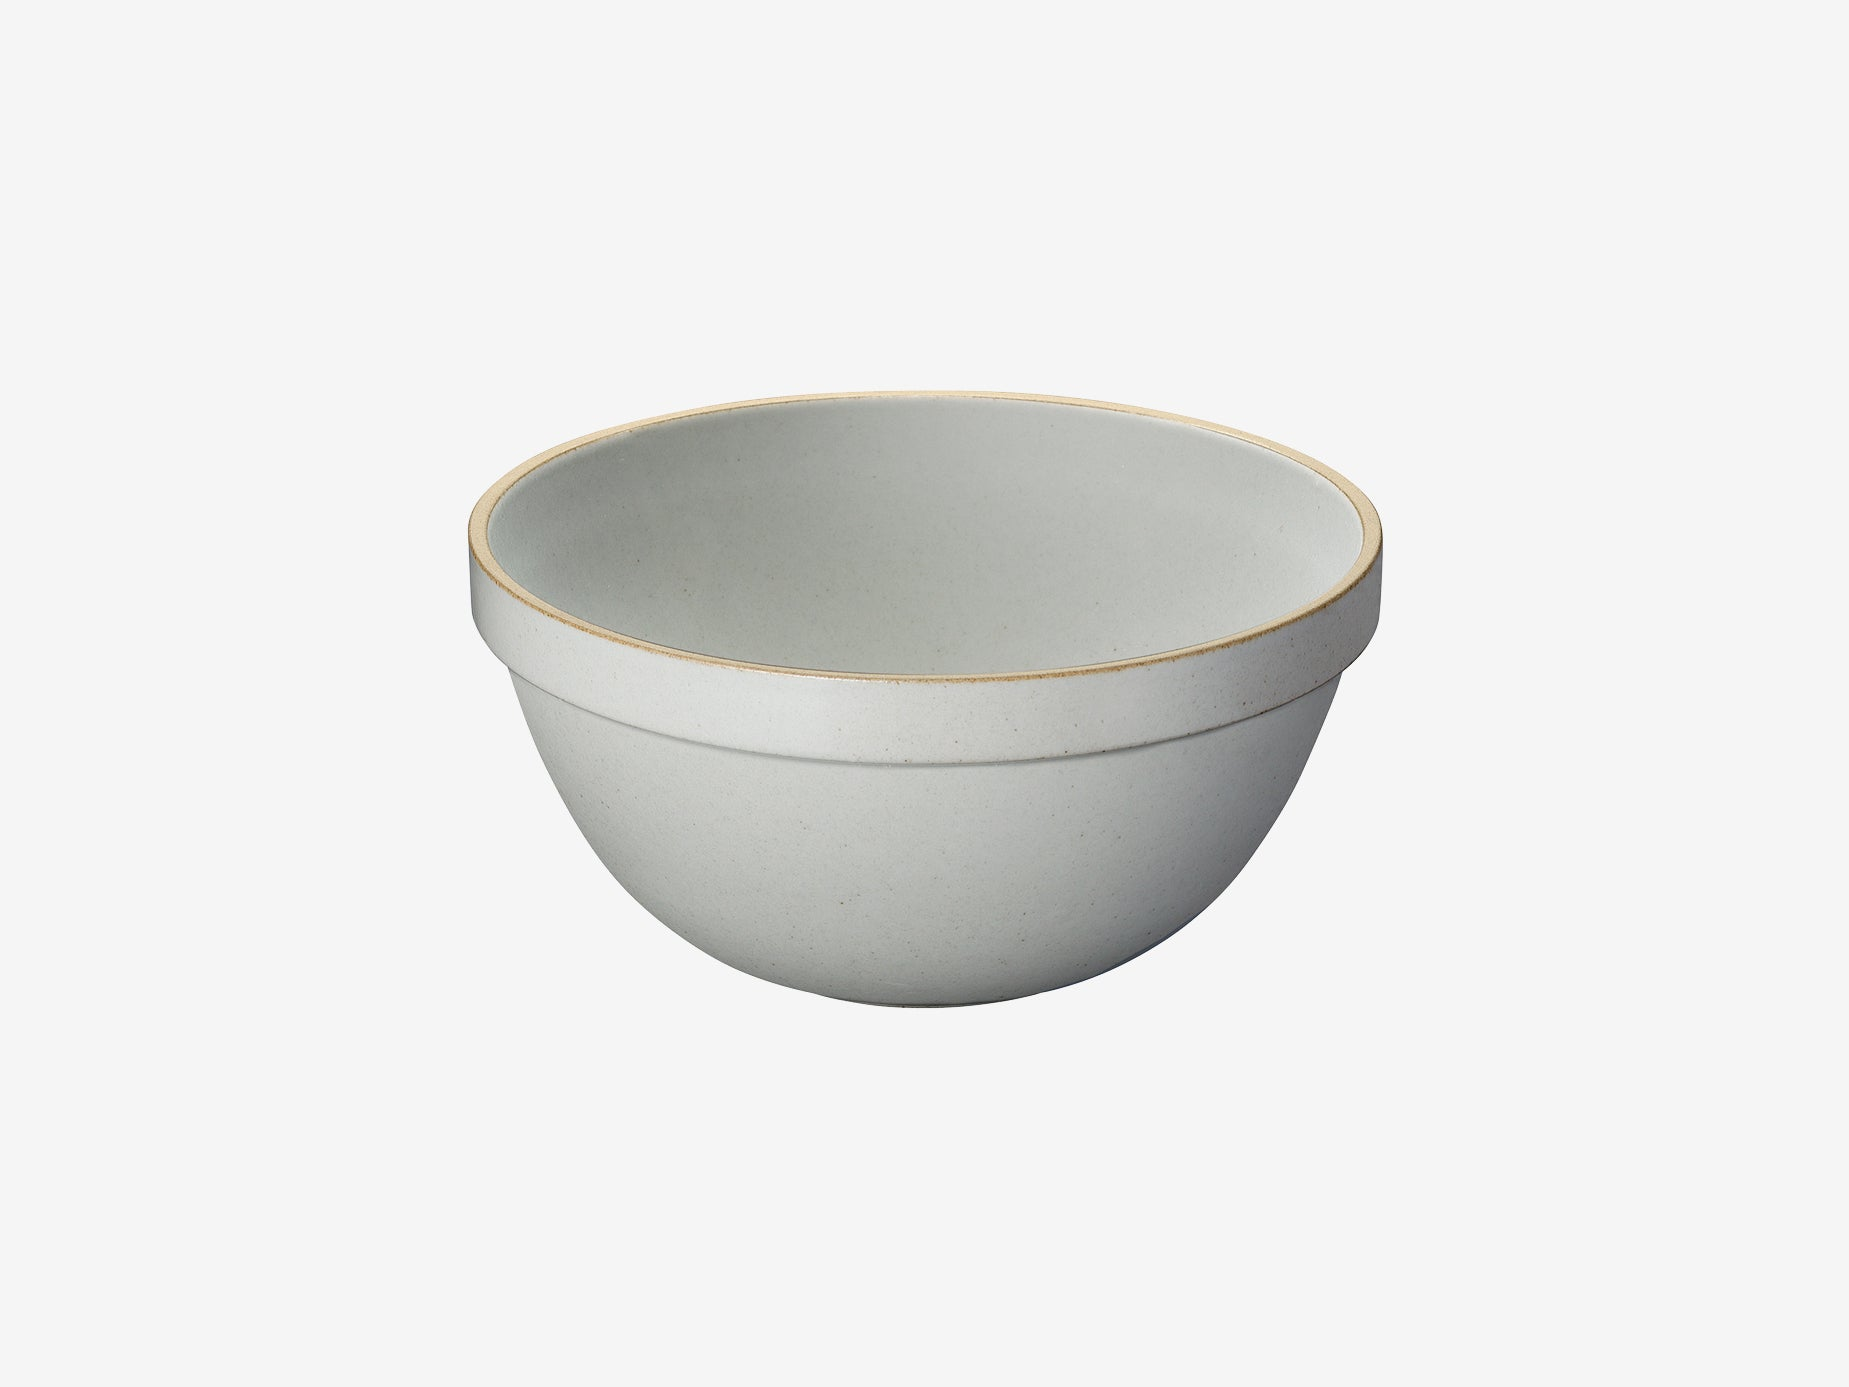 Hasami Porcelain Deep Round Bowl - Large, Gloss Grey